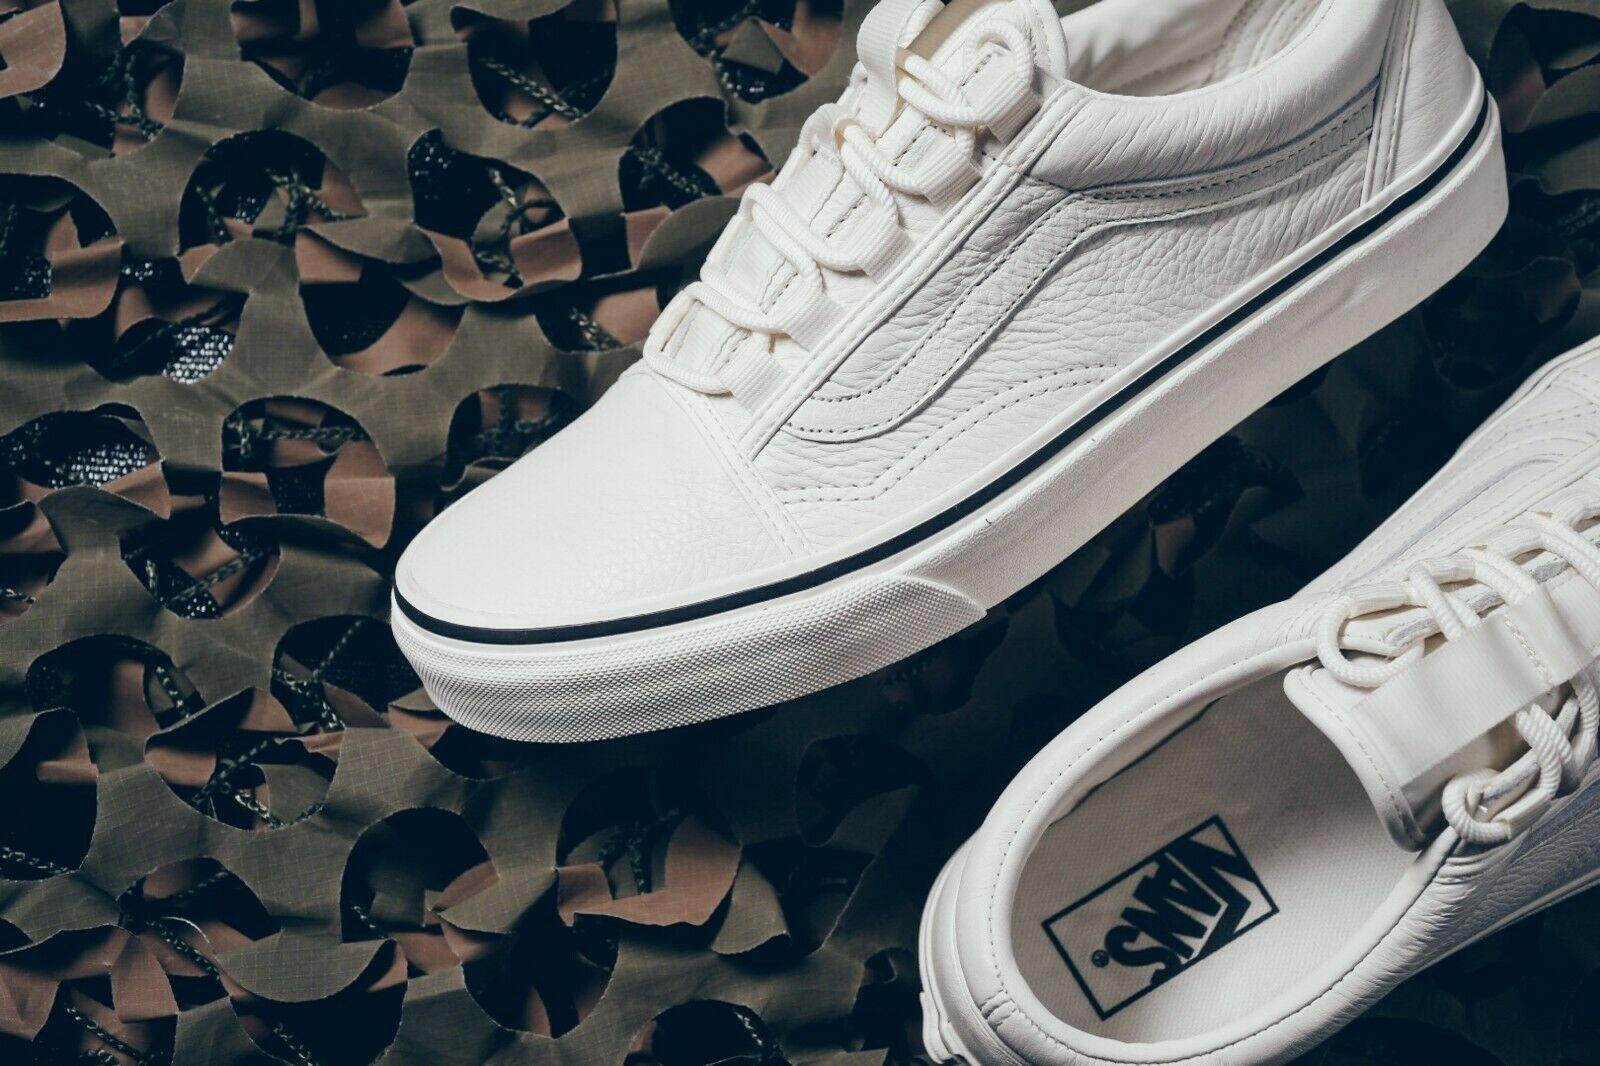 00e9b0a158b868 Vans Old Skool Ghillie Leather Marshmallow Men s Classic Skate Shoes Size 13